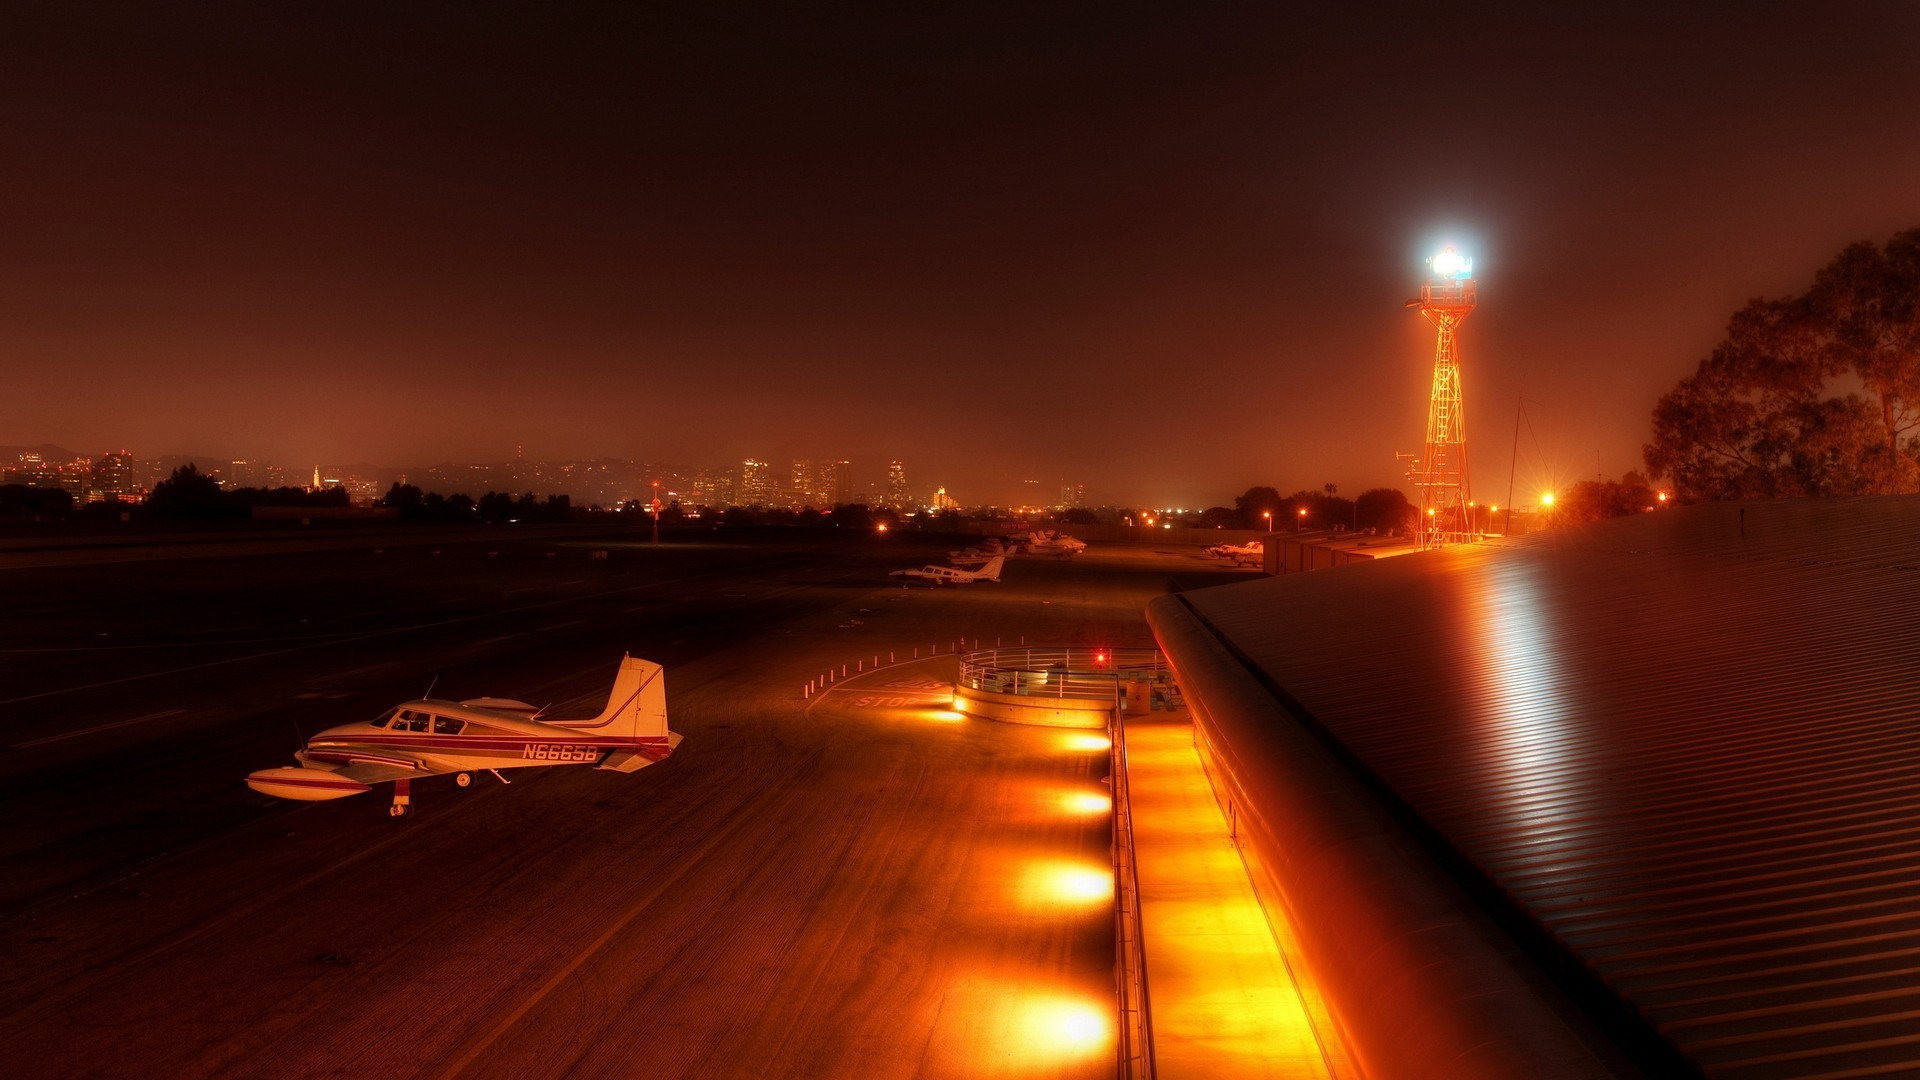 Hdr-photography-aircraft-airports-cityscapes-landscapes-1920x1080-photography-aircraft-airports-wallpaper-wpc9205893